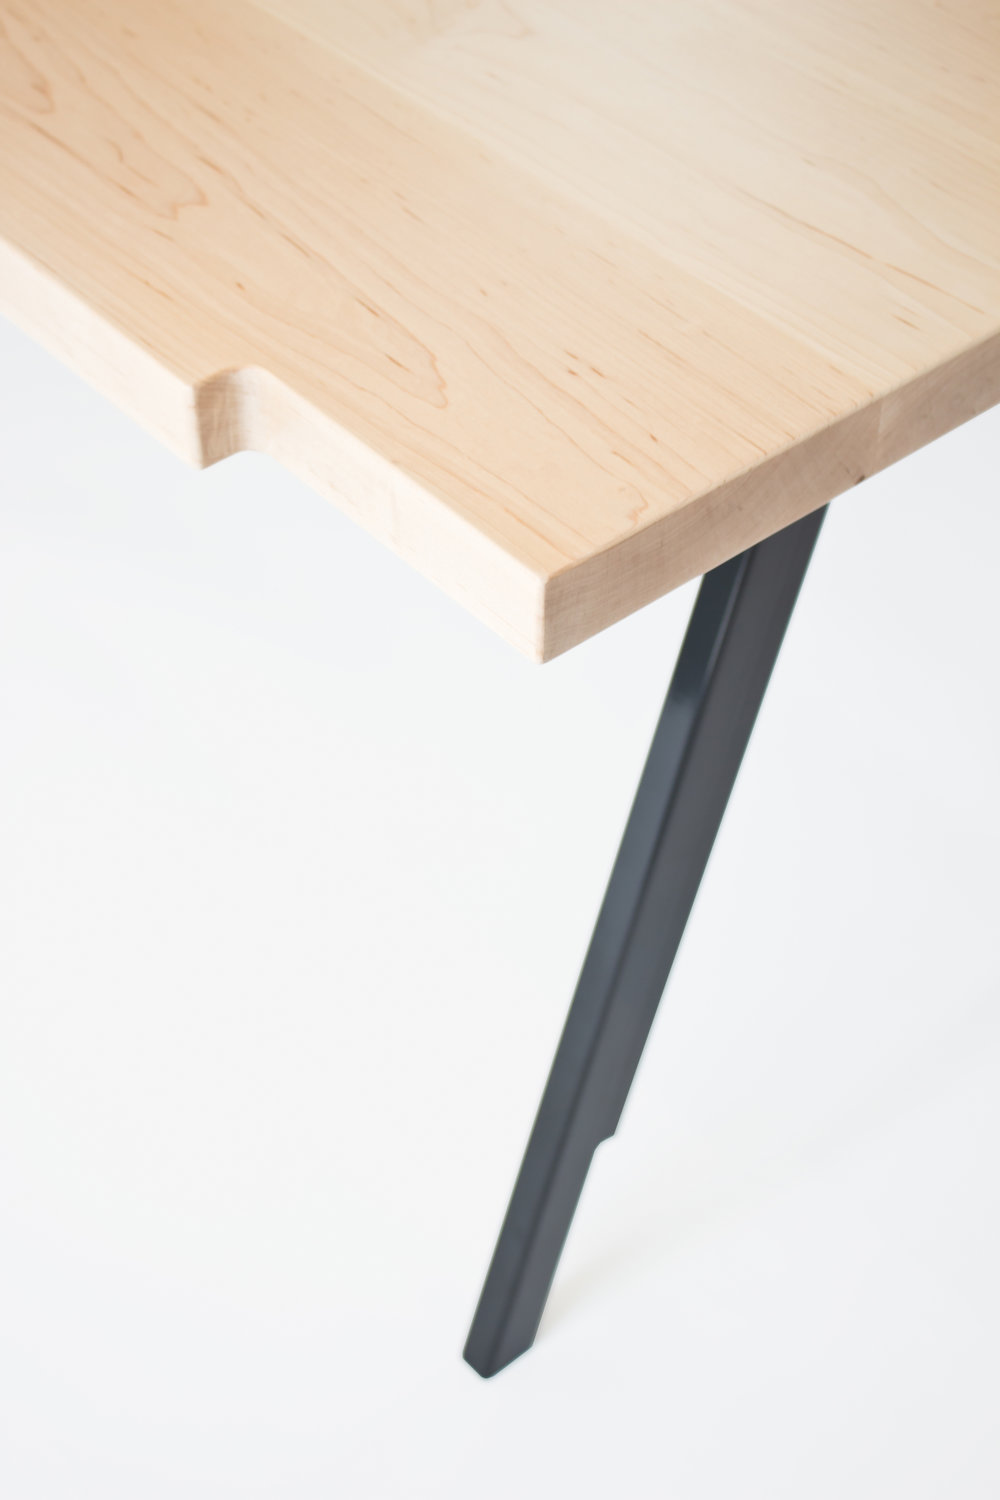 AlexAllen Studio - SEB Table Detail.jpg